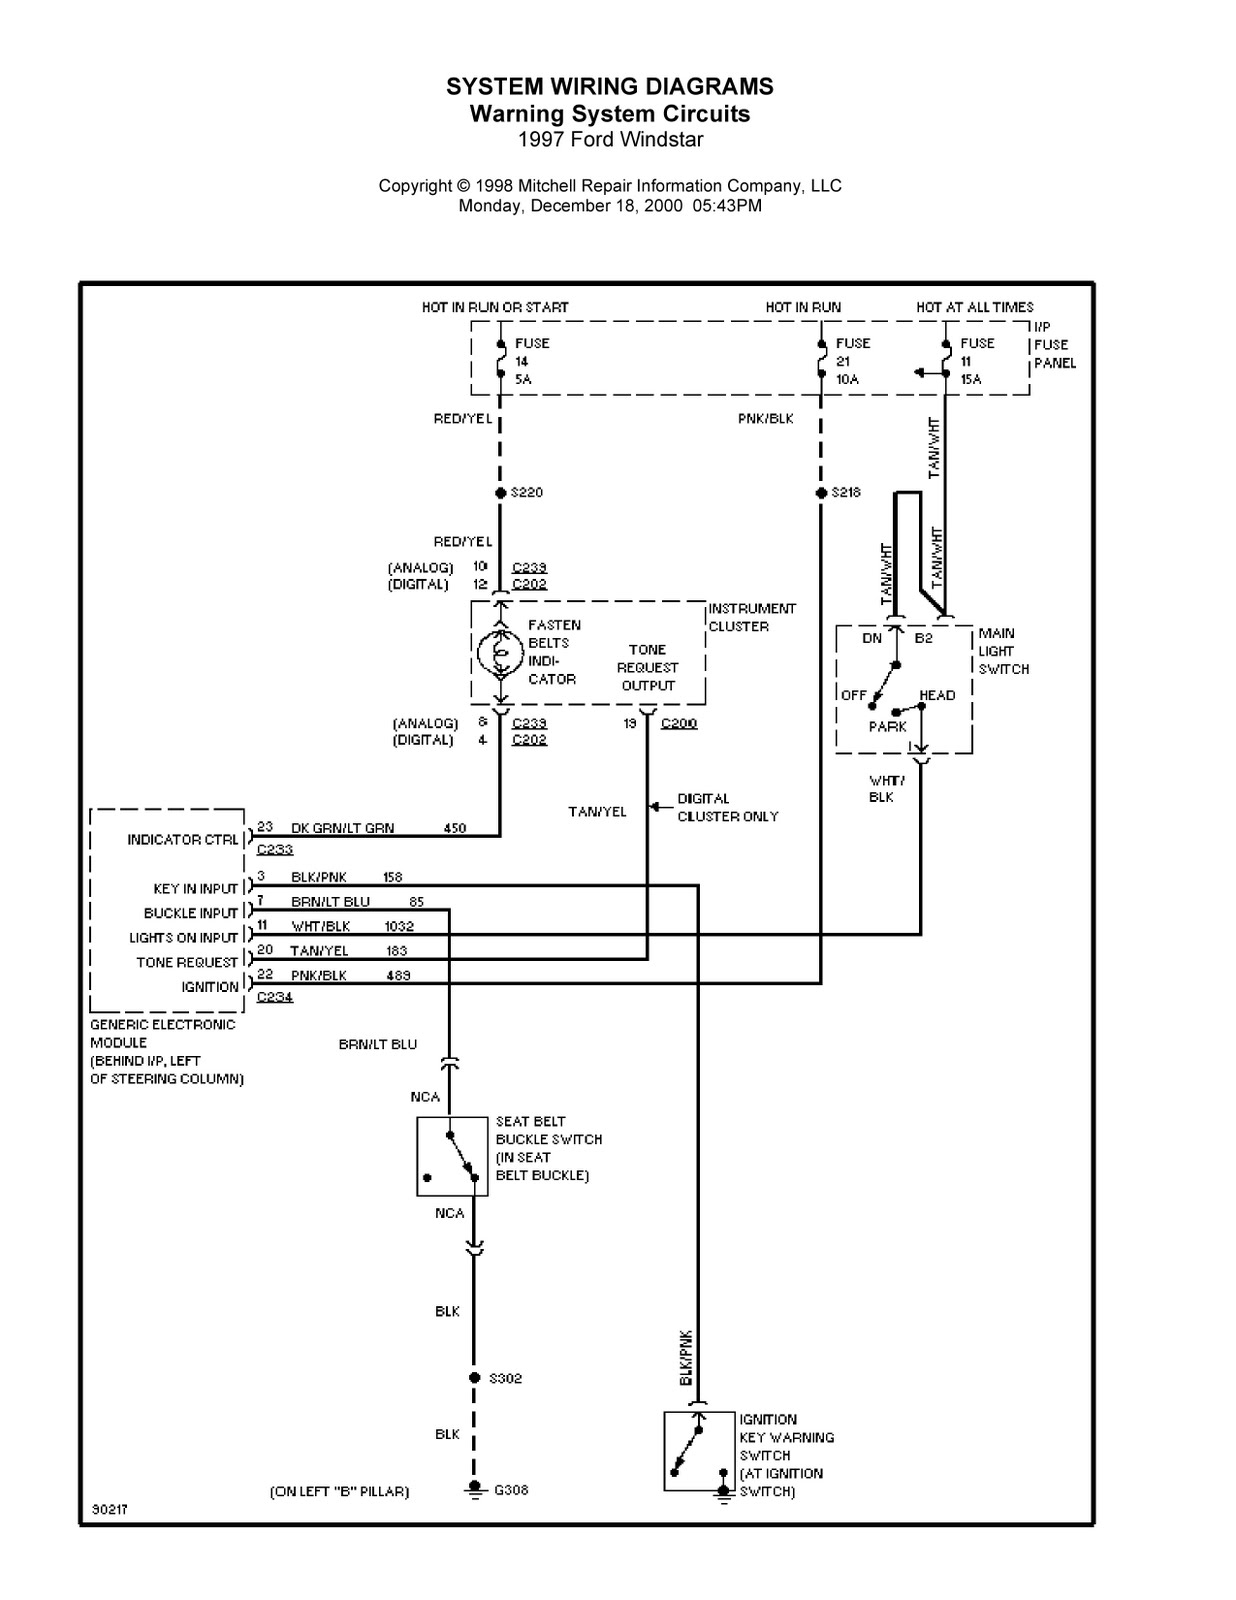 1997 Ford Windstar Complete System Wiring Diagrams 2001 Radio Diagram Center